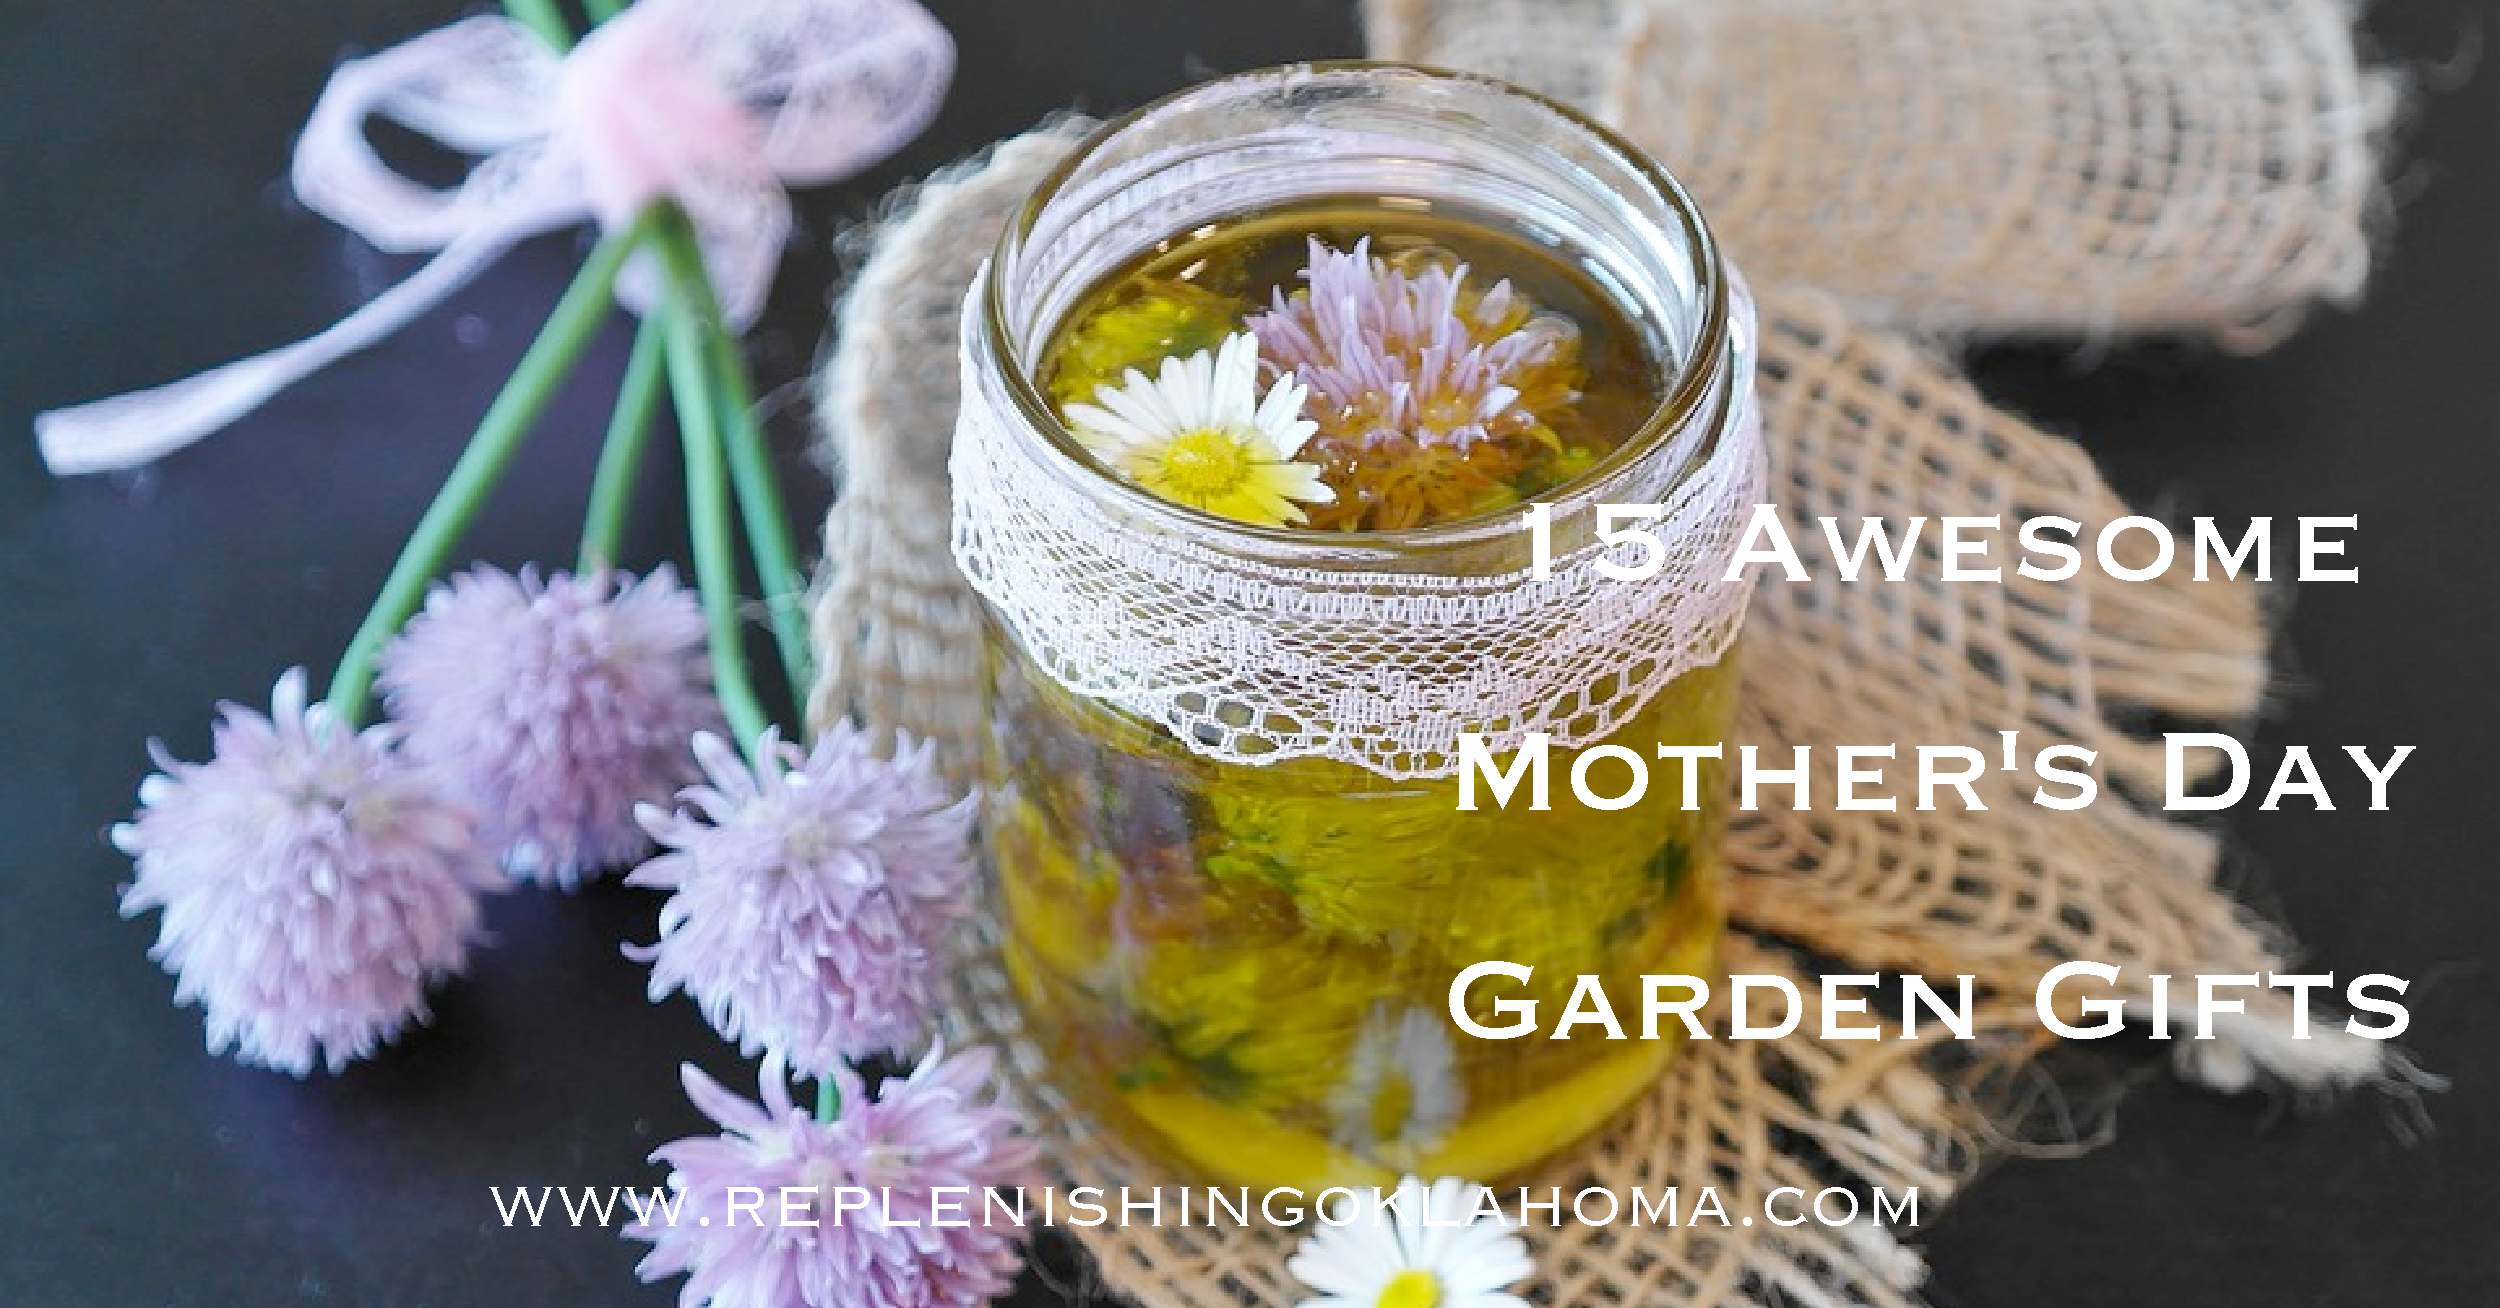 15 Awesome Mother's Day Garden Gifts